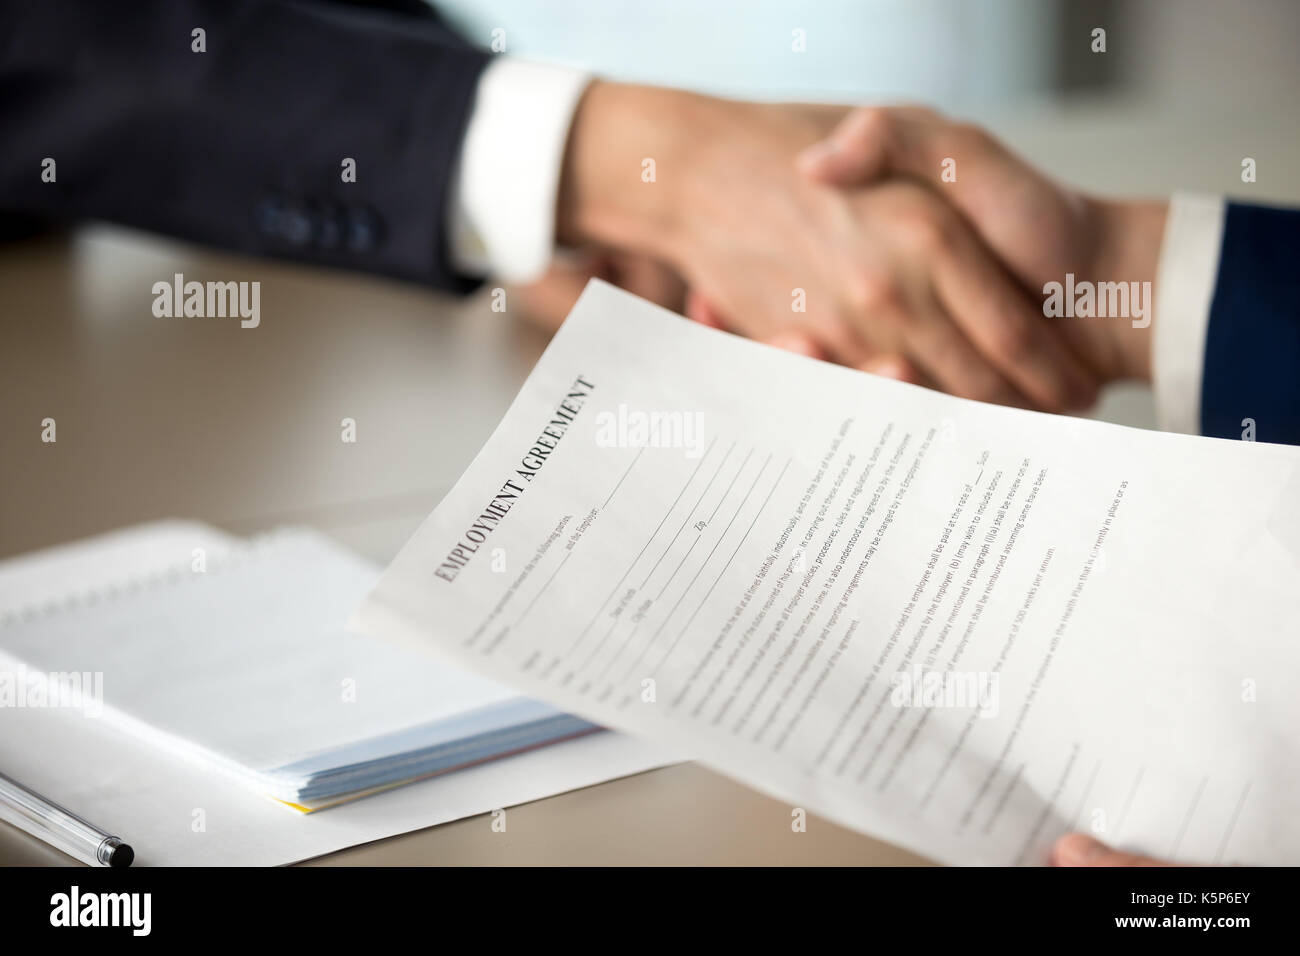 Boss handshaking and offering employment agreement - Stock Image